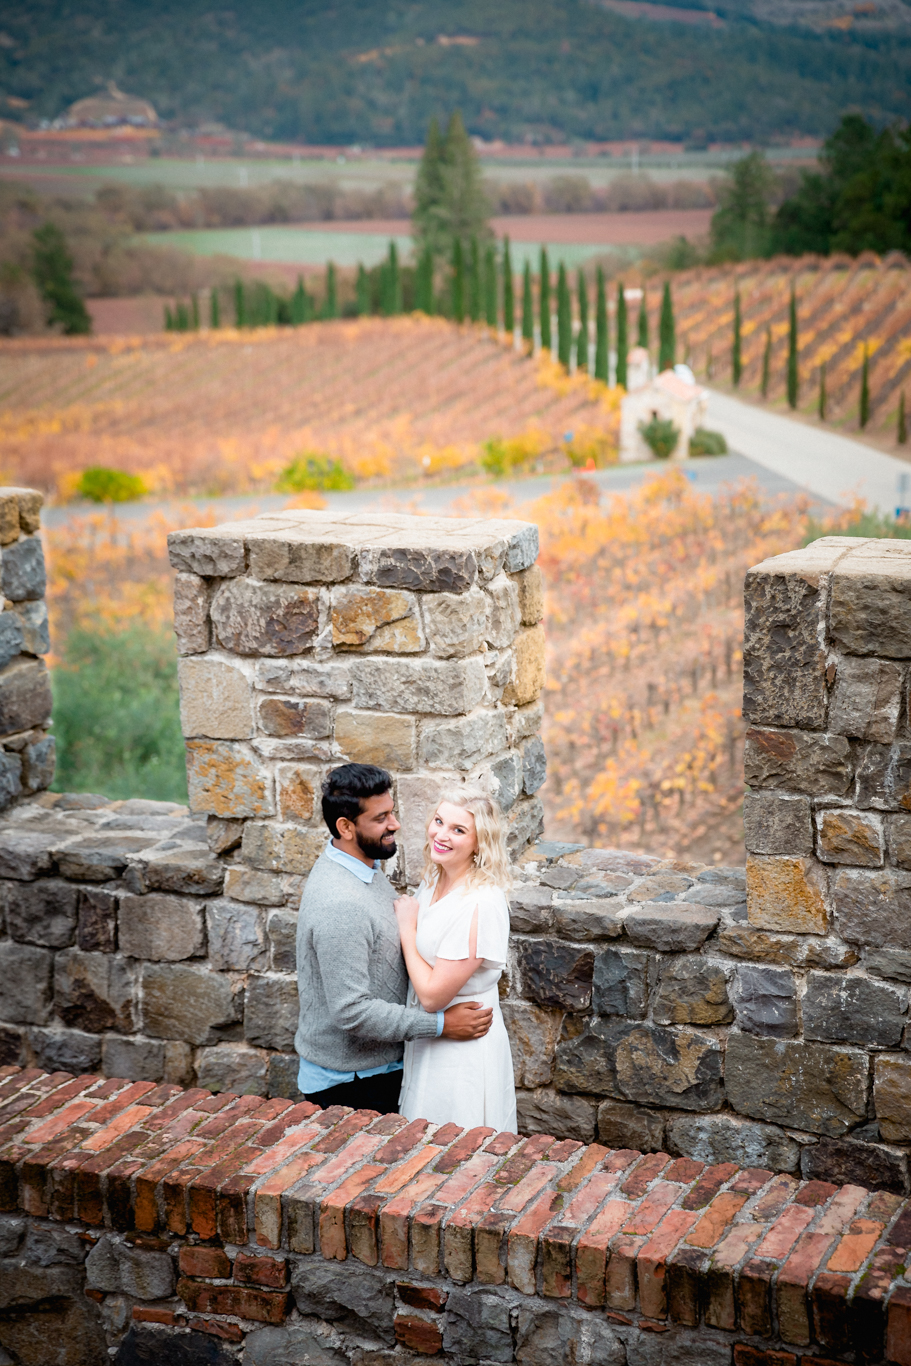 2018.12.03_Ashir-and-Emily-Engagement-Photography-@heymikefrancis-napa-valley-wedding-sacremento-california-heyfrancis-mikefrancis-8157.jpg